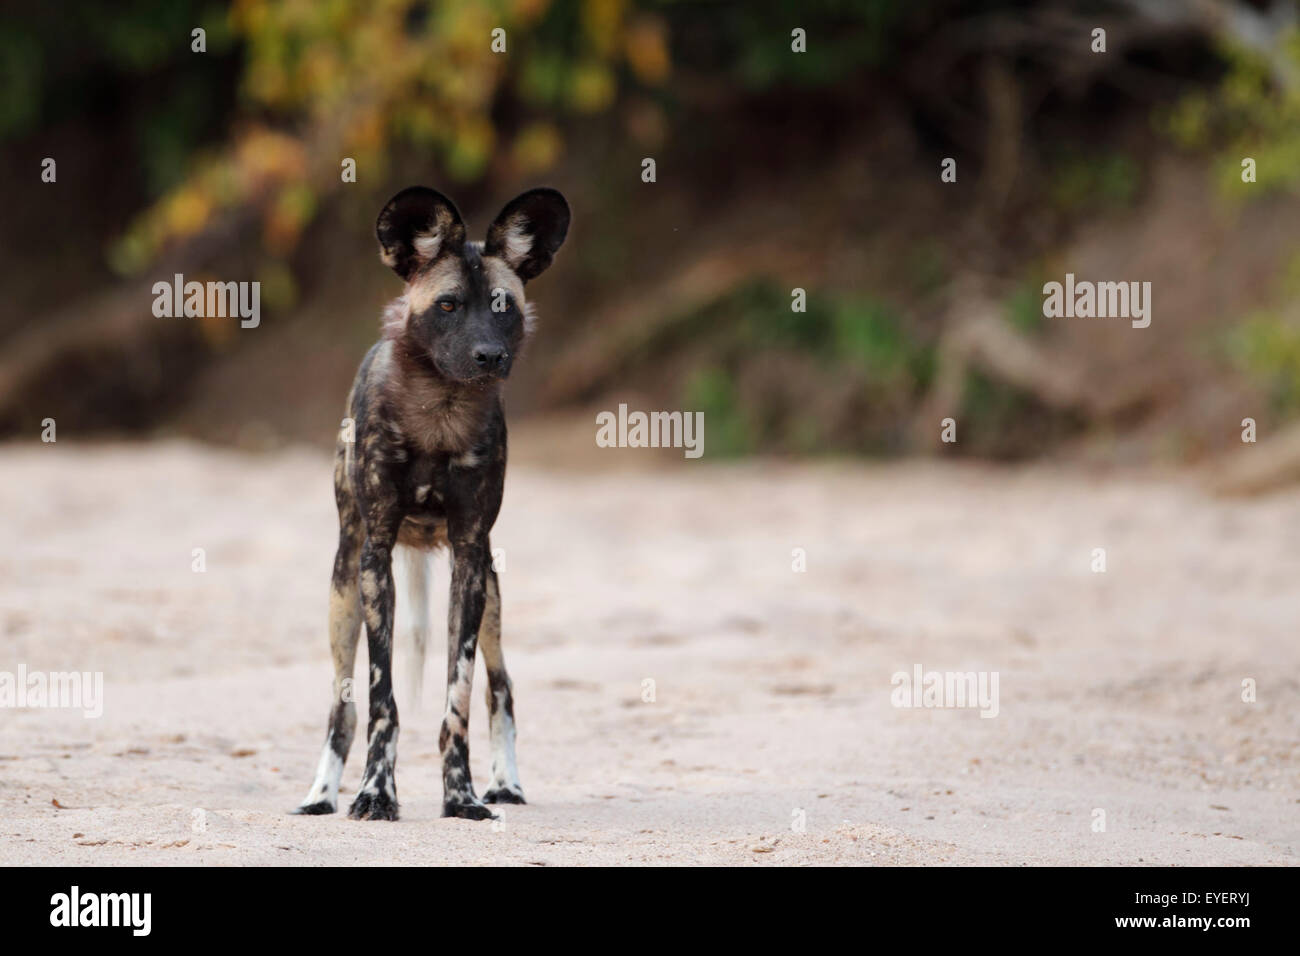 Wild dog, Mana Pools National Park, Zimbabwe, Simbabwe, standing alert in a sandy river-bed. - Stock Image